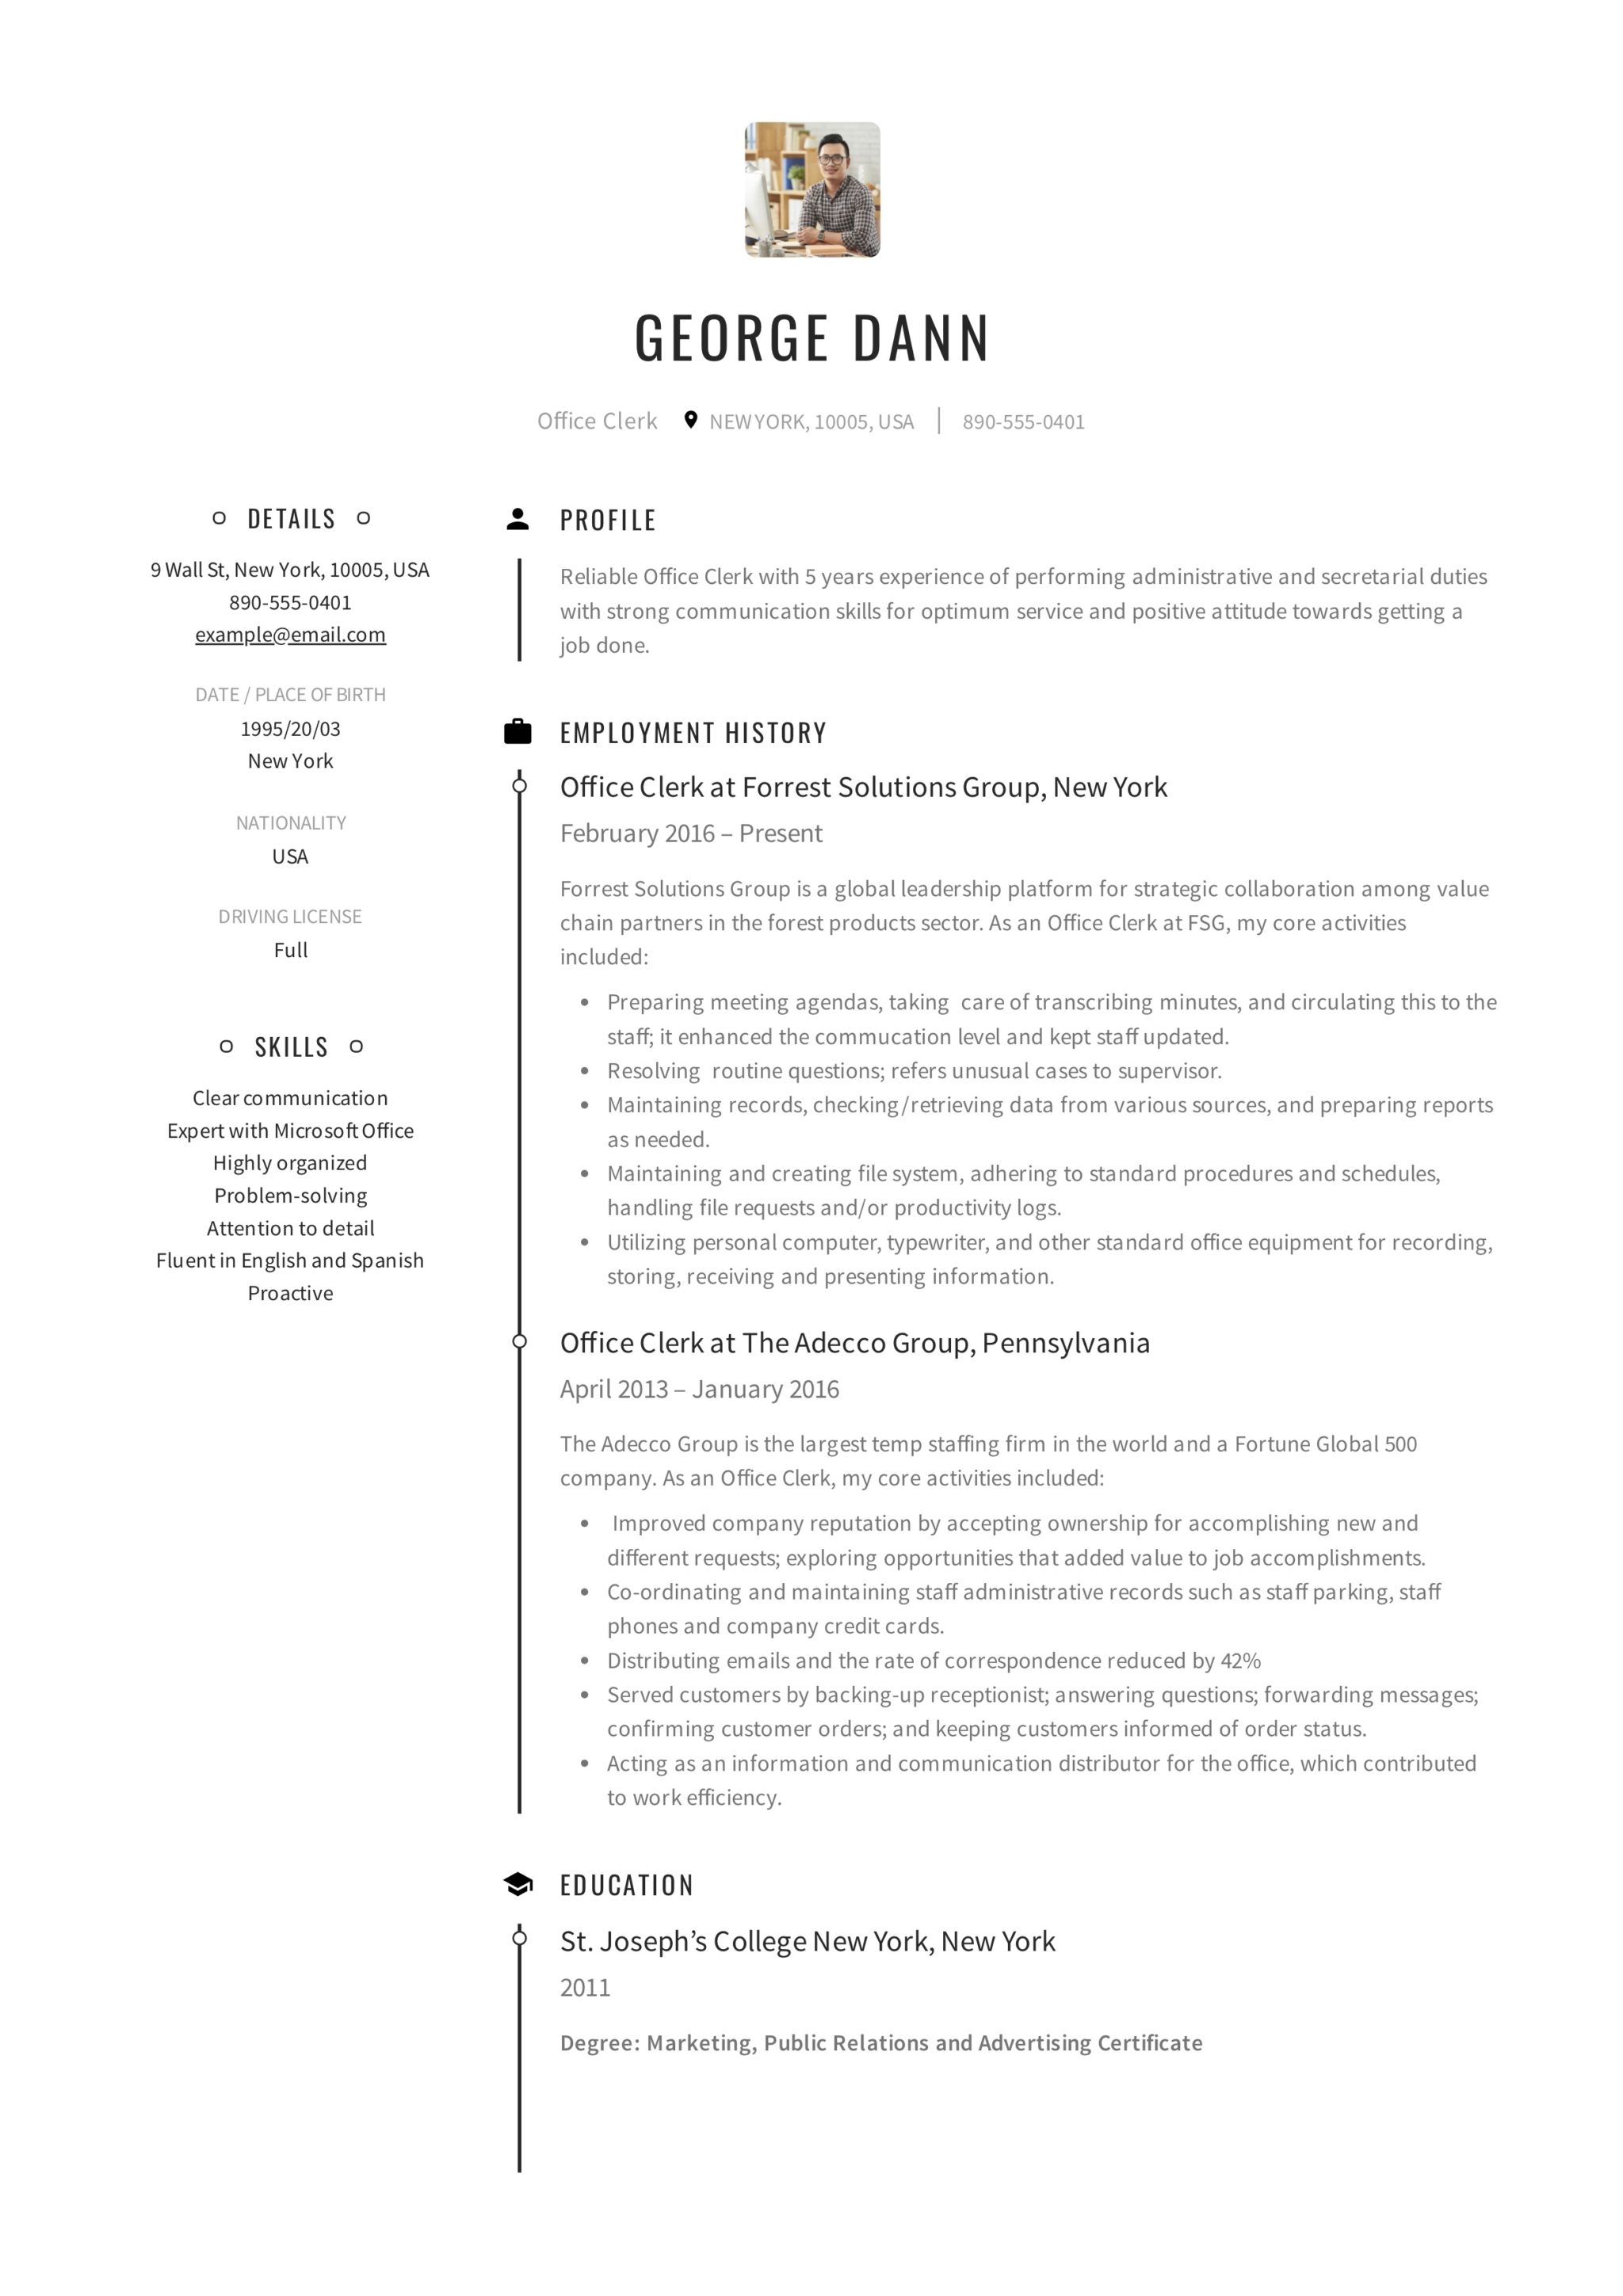 Office Clerk Resume Guide 12 Samples Pdf 2020